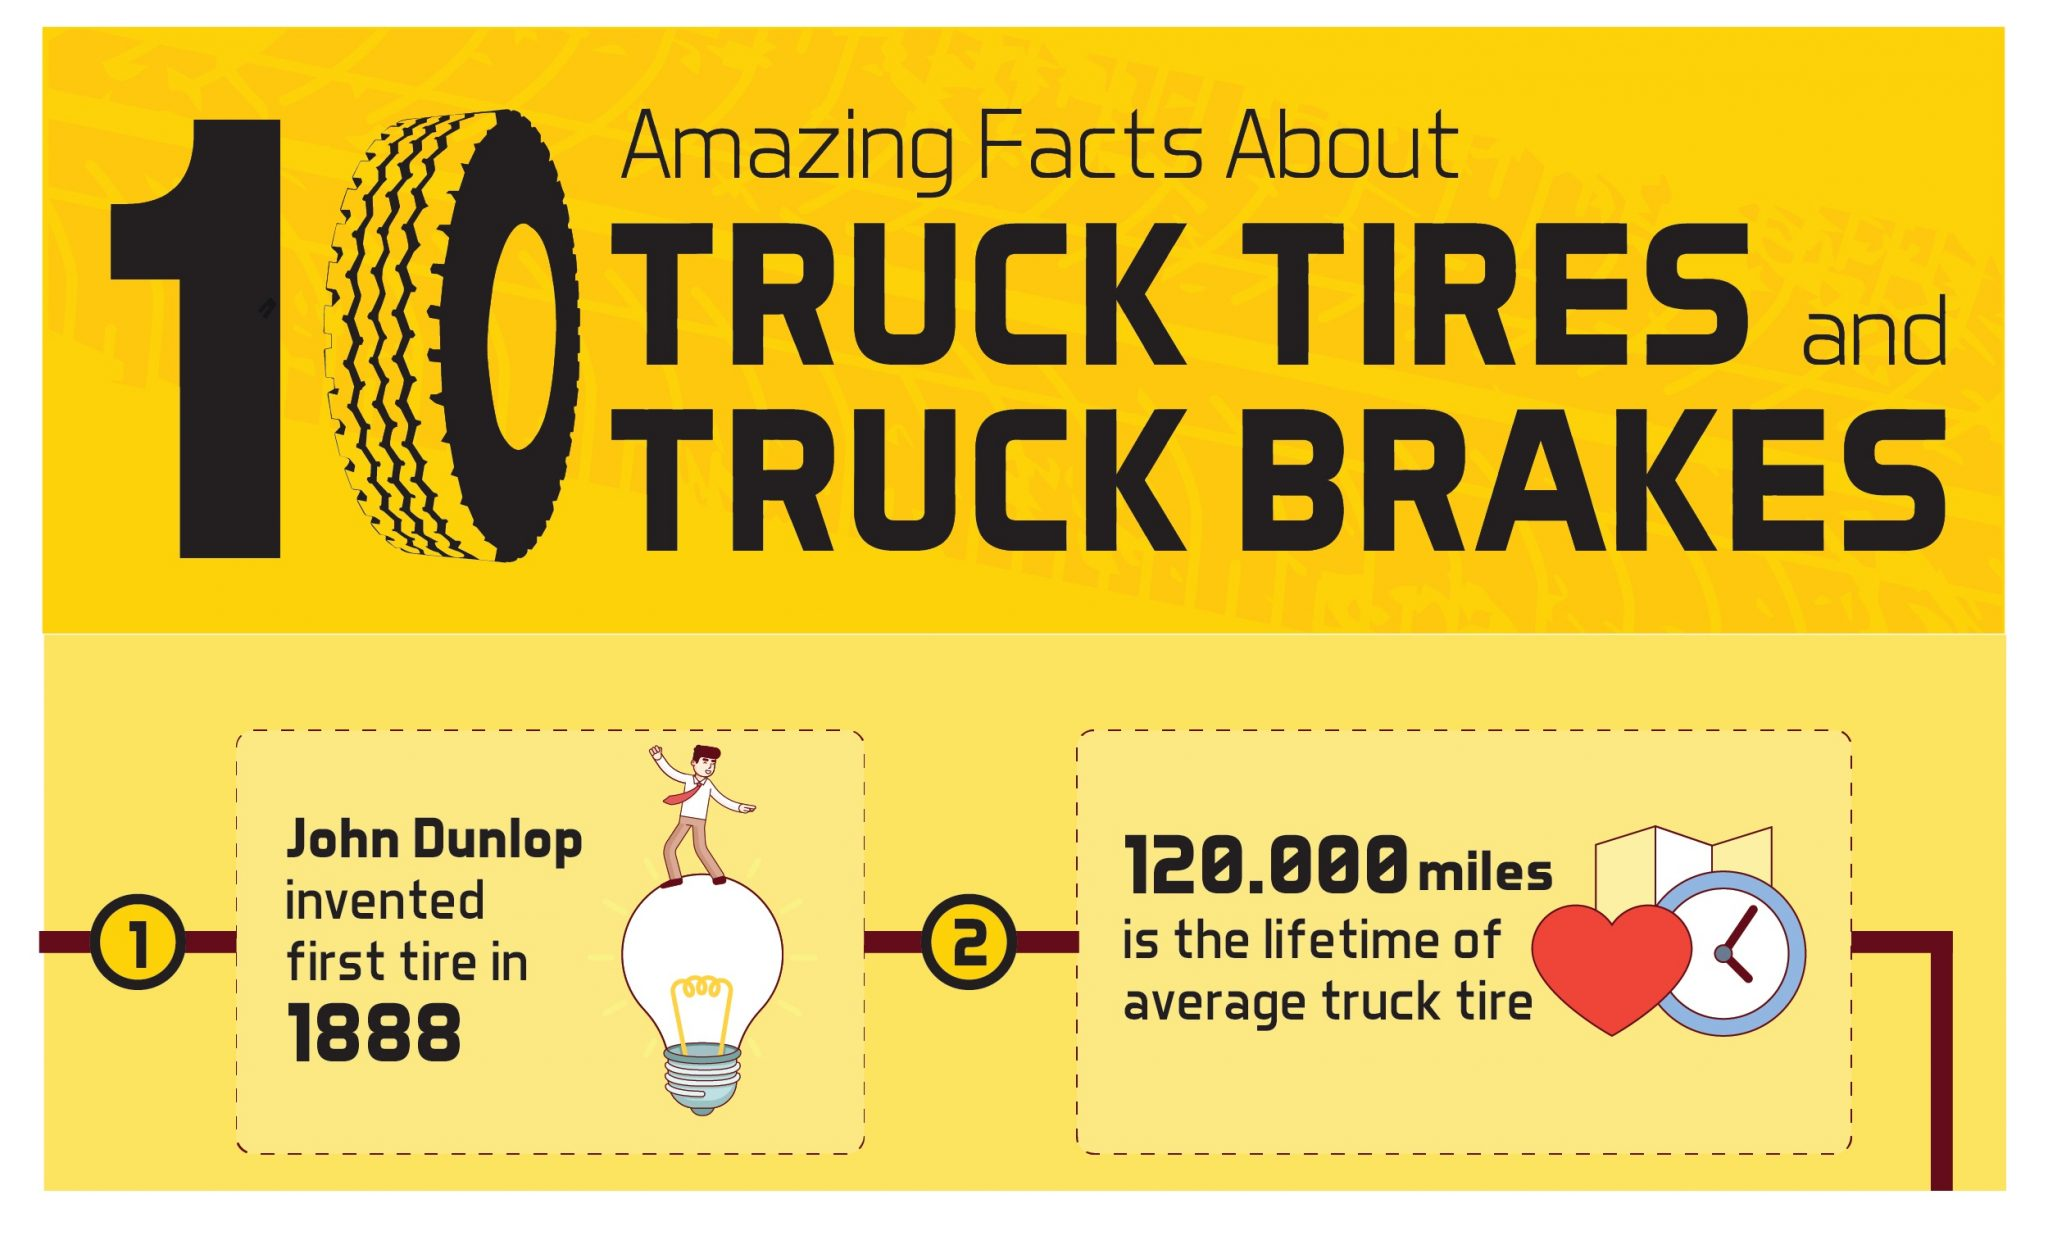 INFOGRAPHIC: 10 Amazing Facts About Truck Tires and Truck Brakes